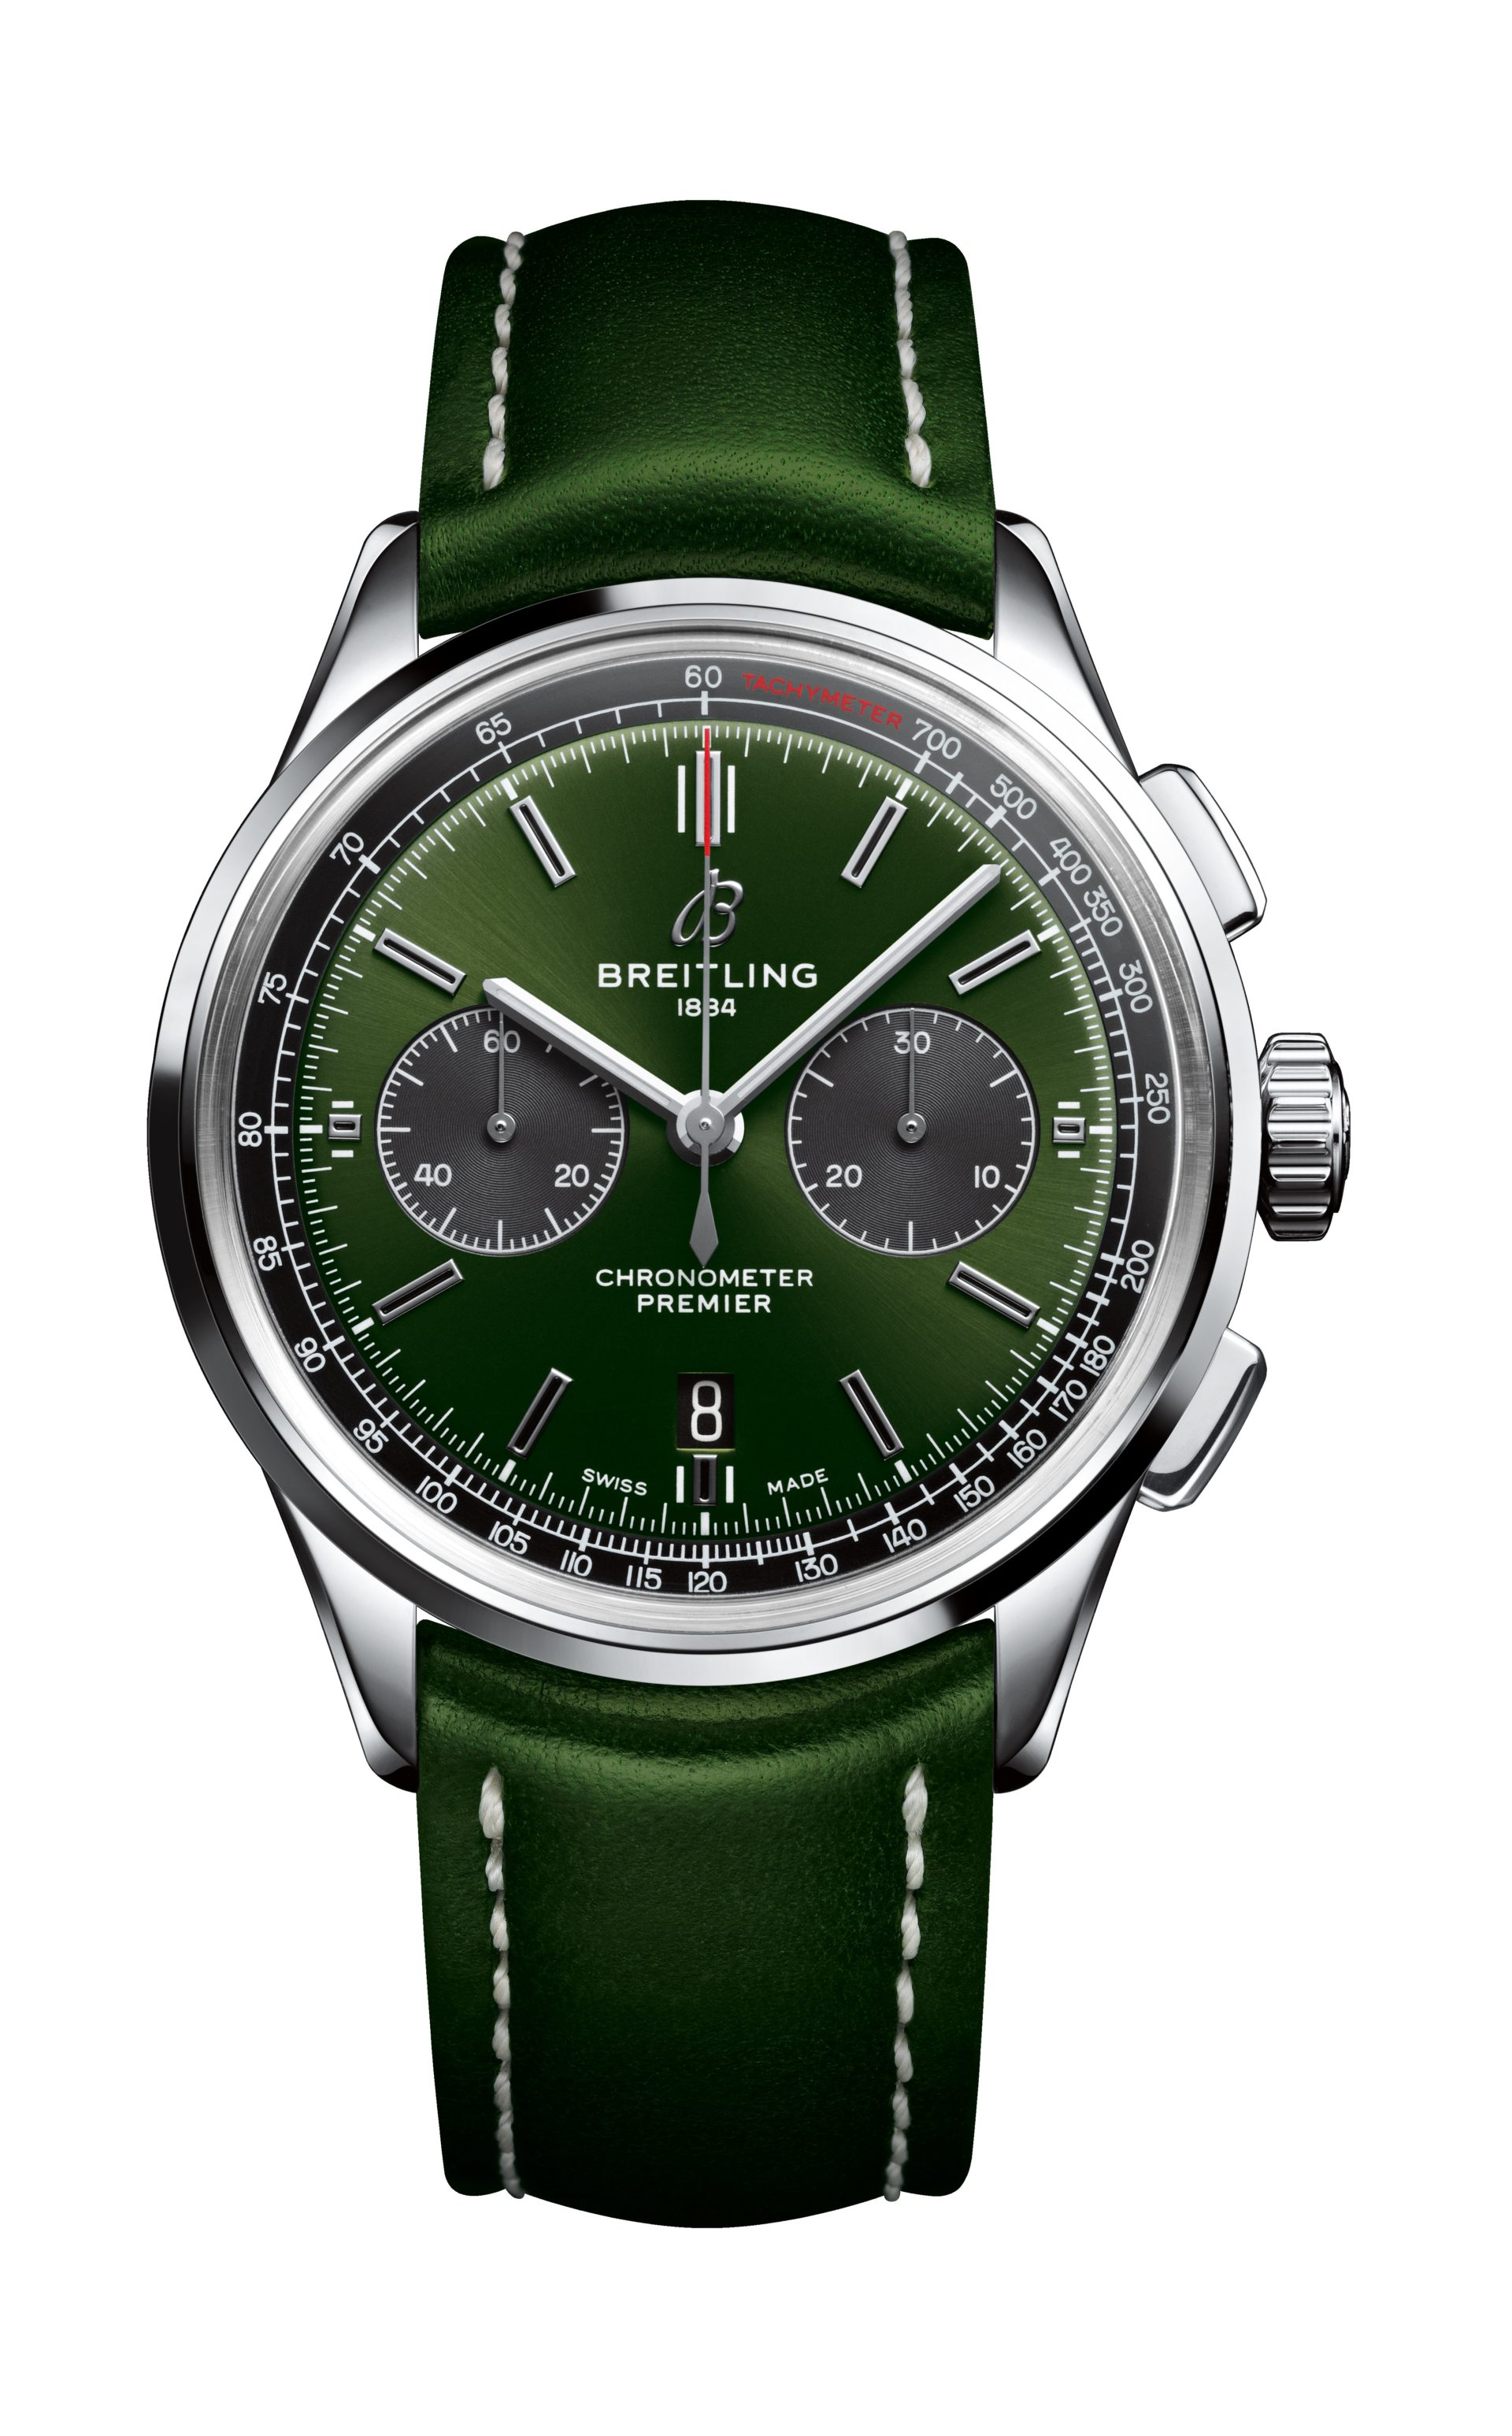 Überzeugendes Design der Breitling Premier B01 Chronograph 42 Bentley British Racing Green mit Lederband